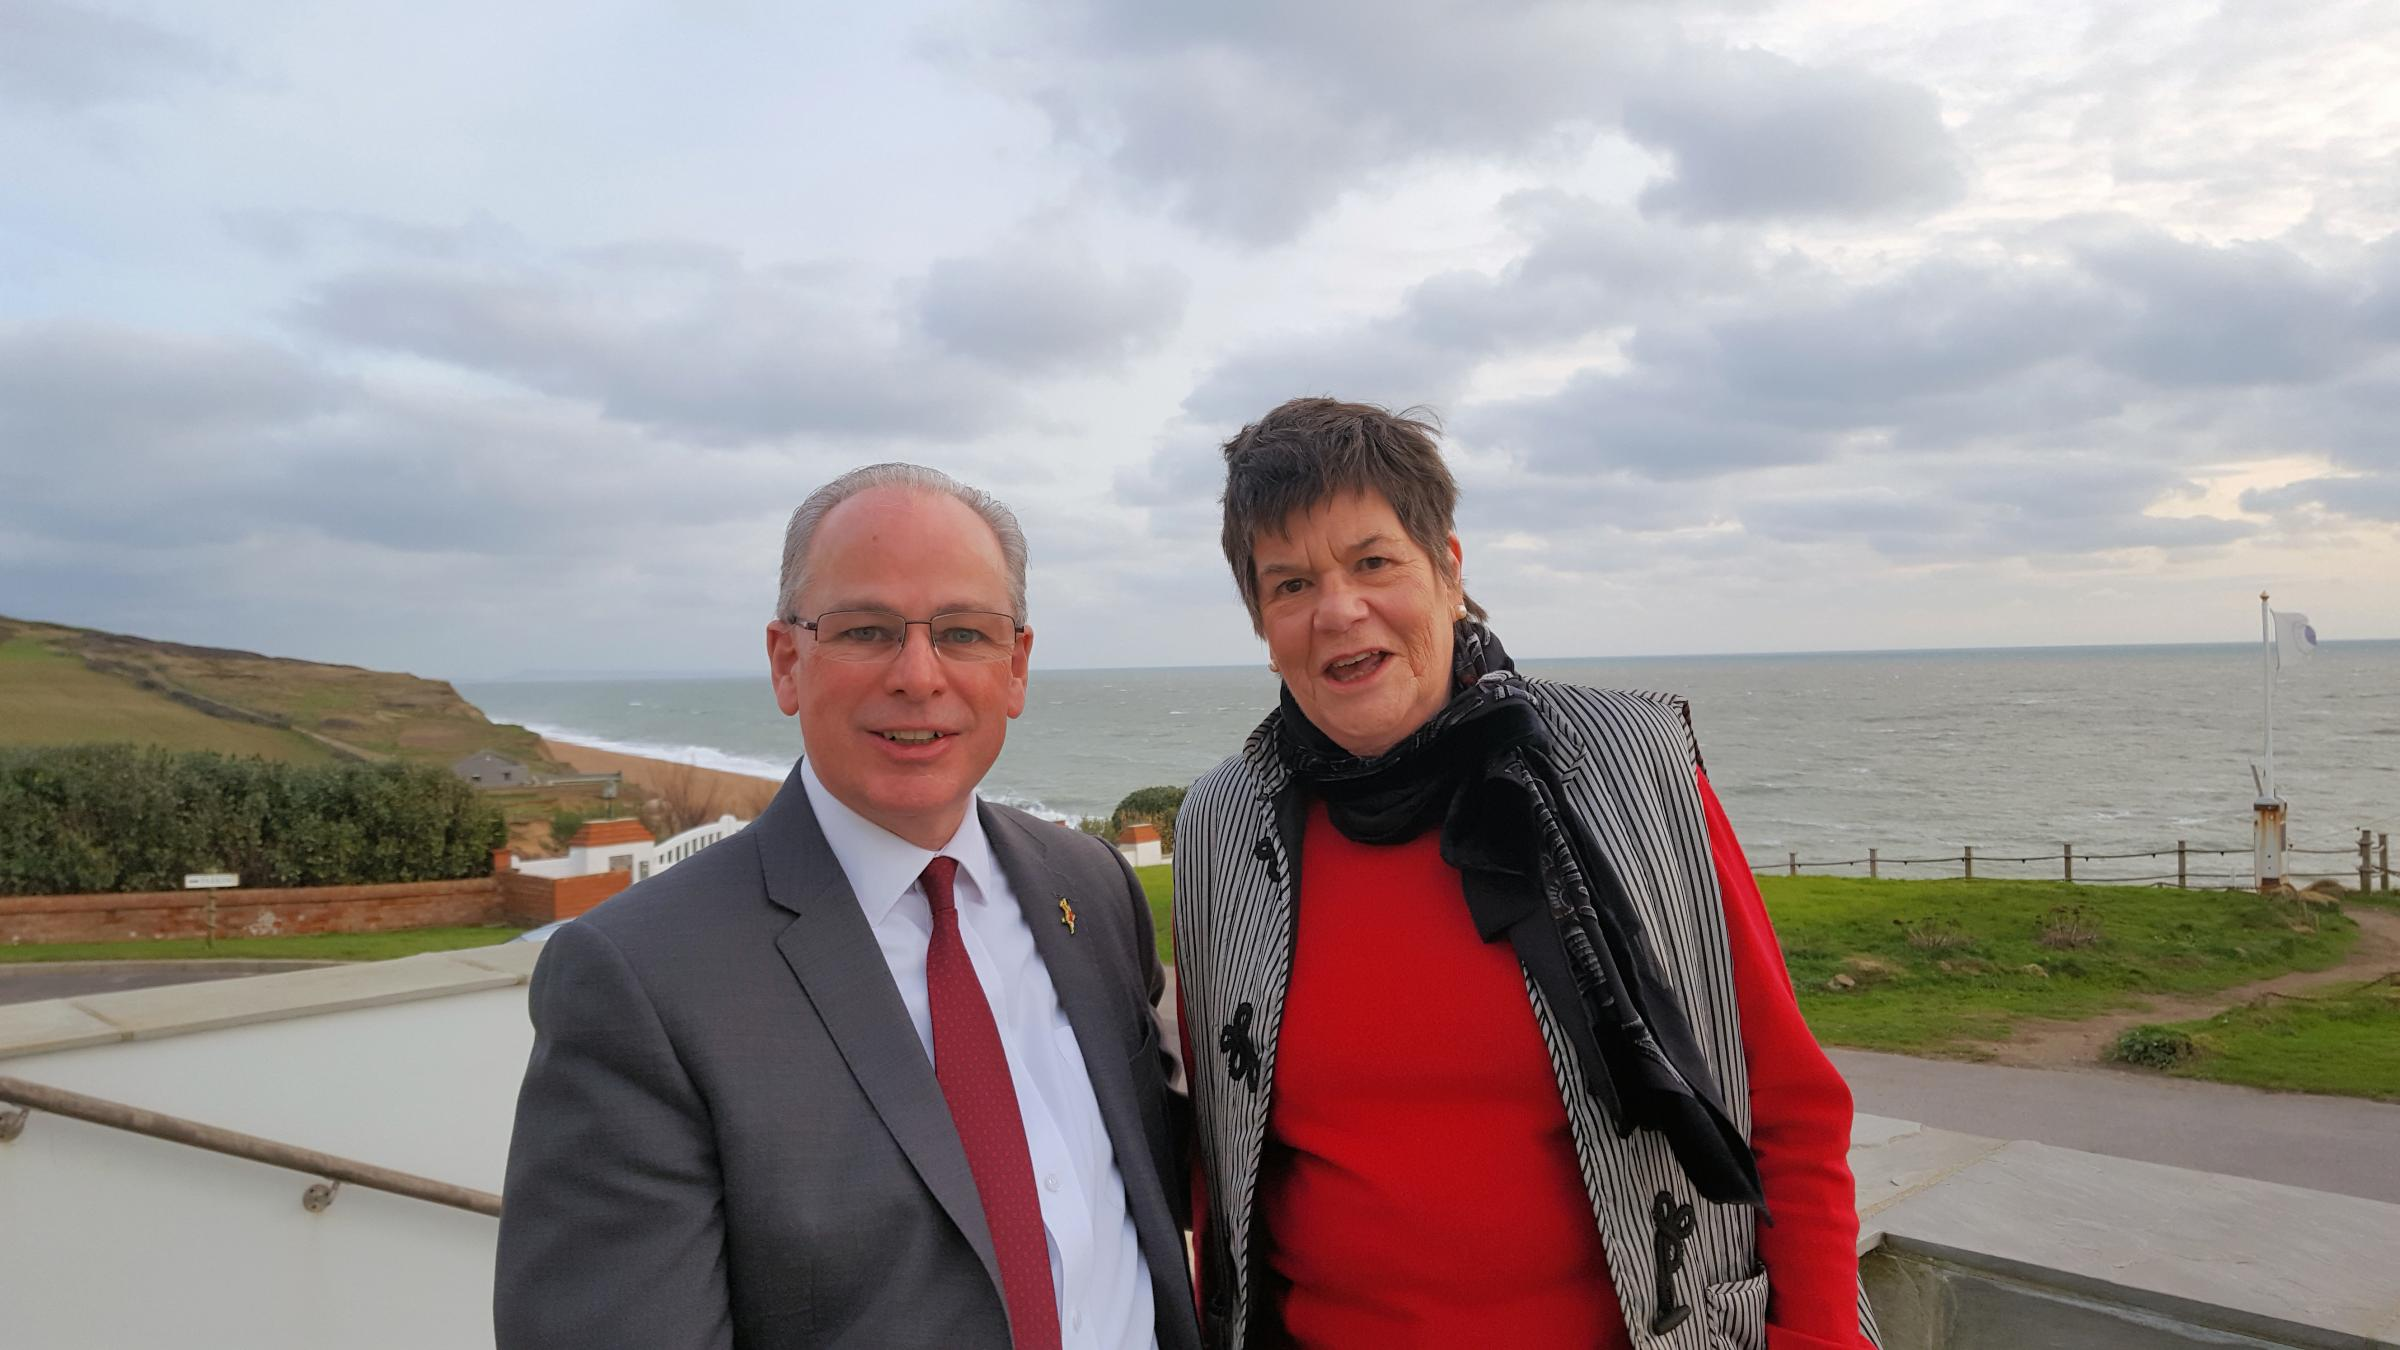 Nigel Bates and Mary Russell